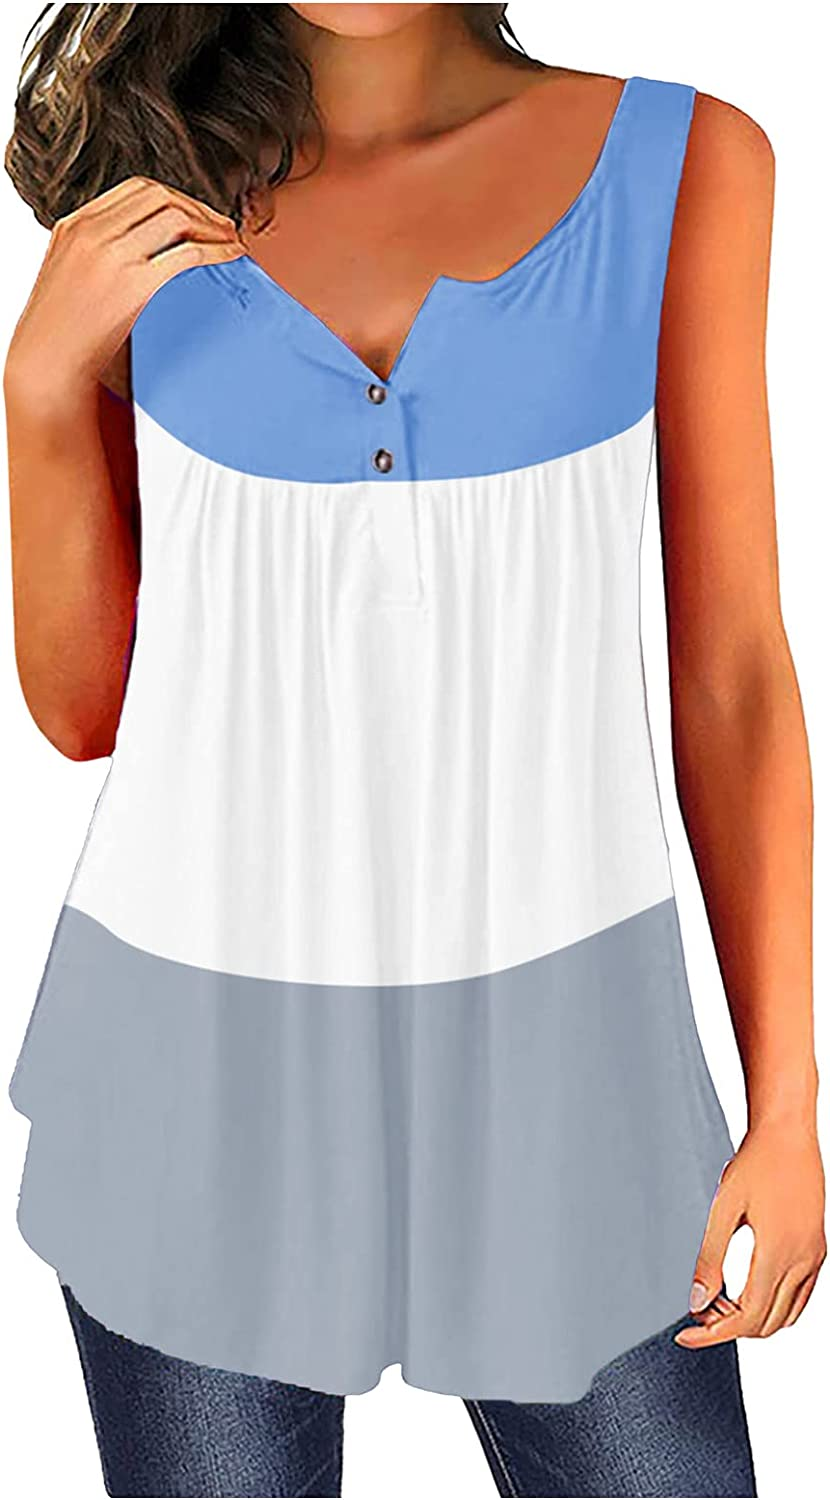 Max 46% OFF New mail order Smileyth Womens Colorblock Summer Casual Tank Button Tops Down V